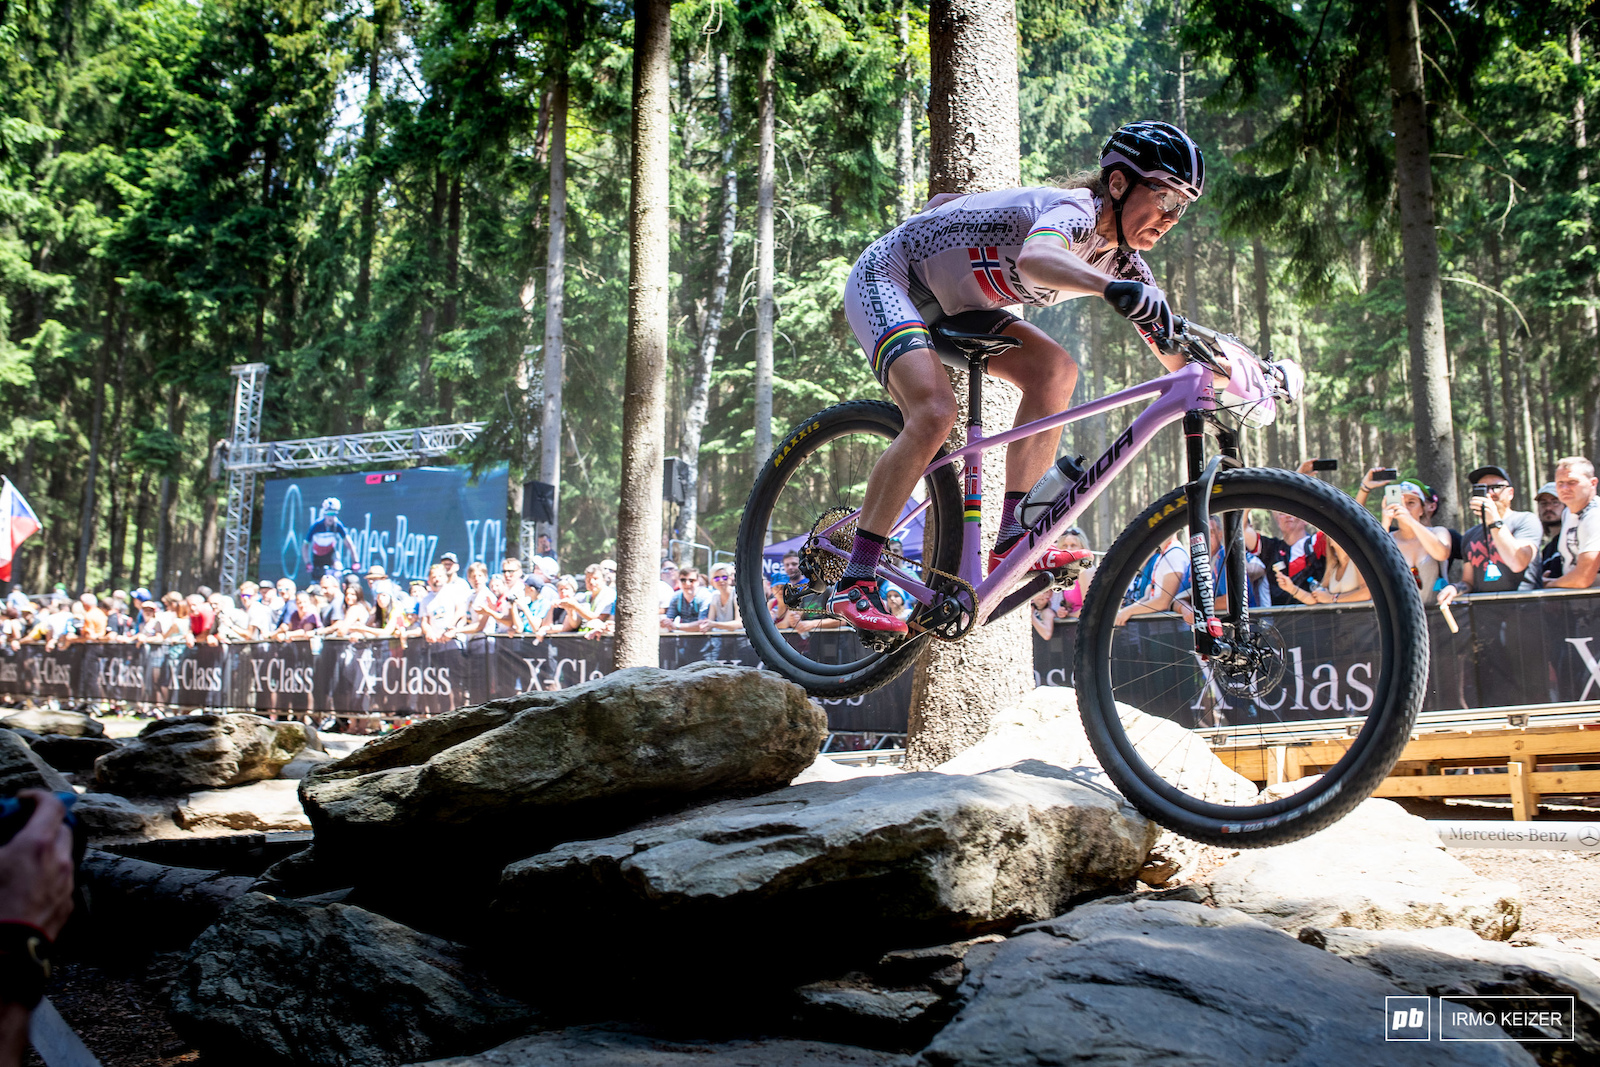 Gunn-Rita Dahle-Flesjaa has one of the most impressive mountainbike careers. Today she was up there again finishing in 6th.